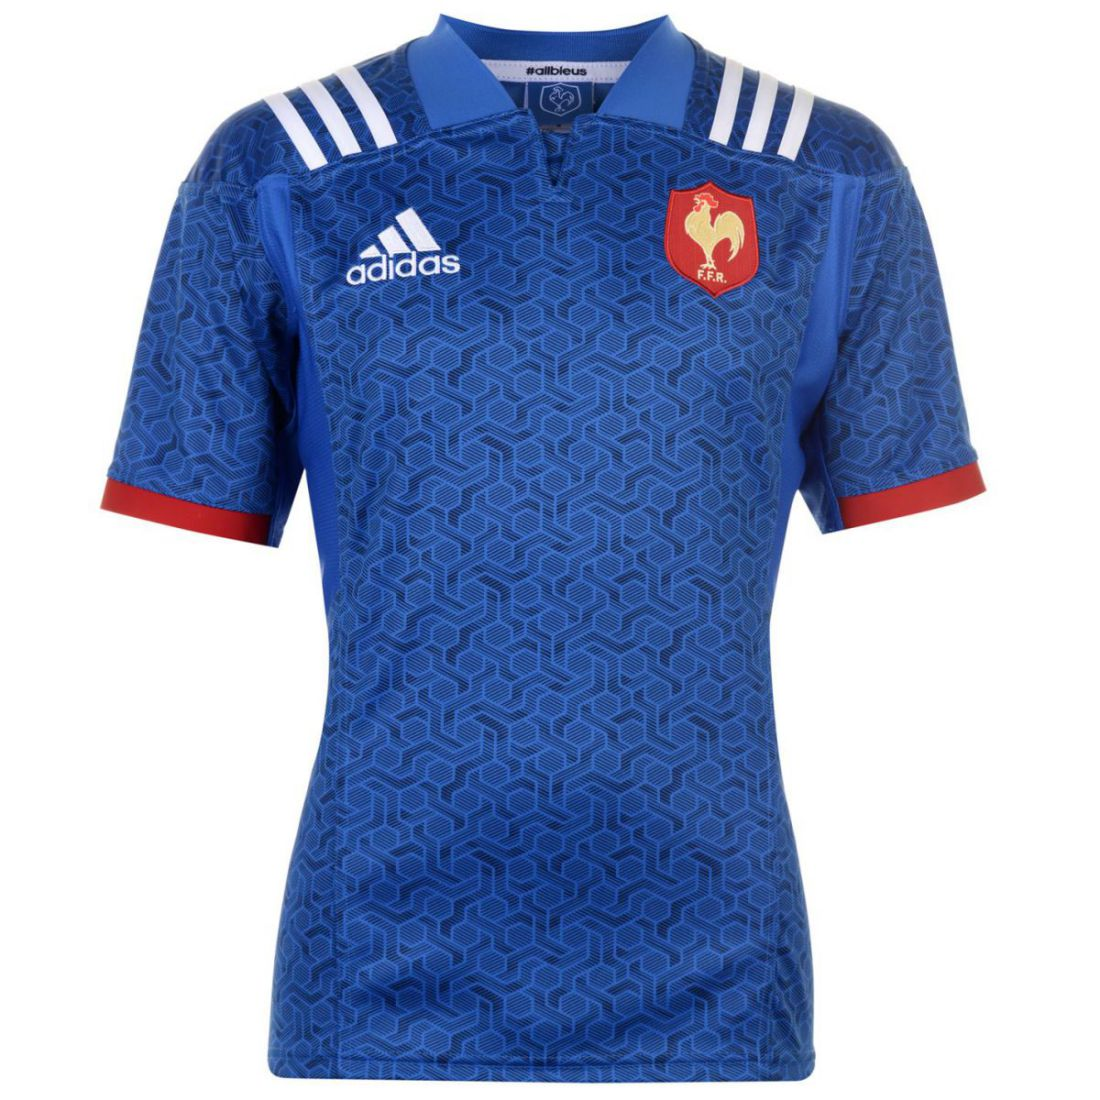 3829c744eb2 adidas Mens France Home Rugby Jersey Shirt Short Sleeve V Neck ClimaLite  Mesh